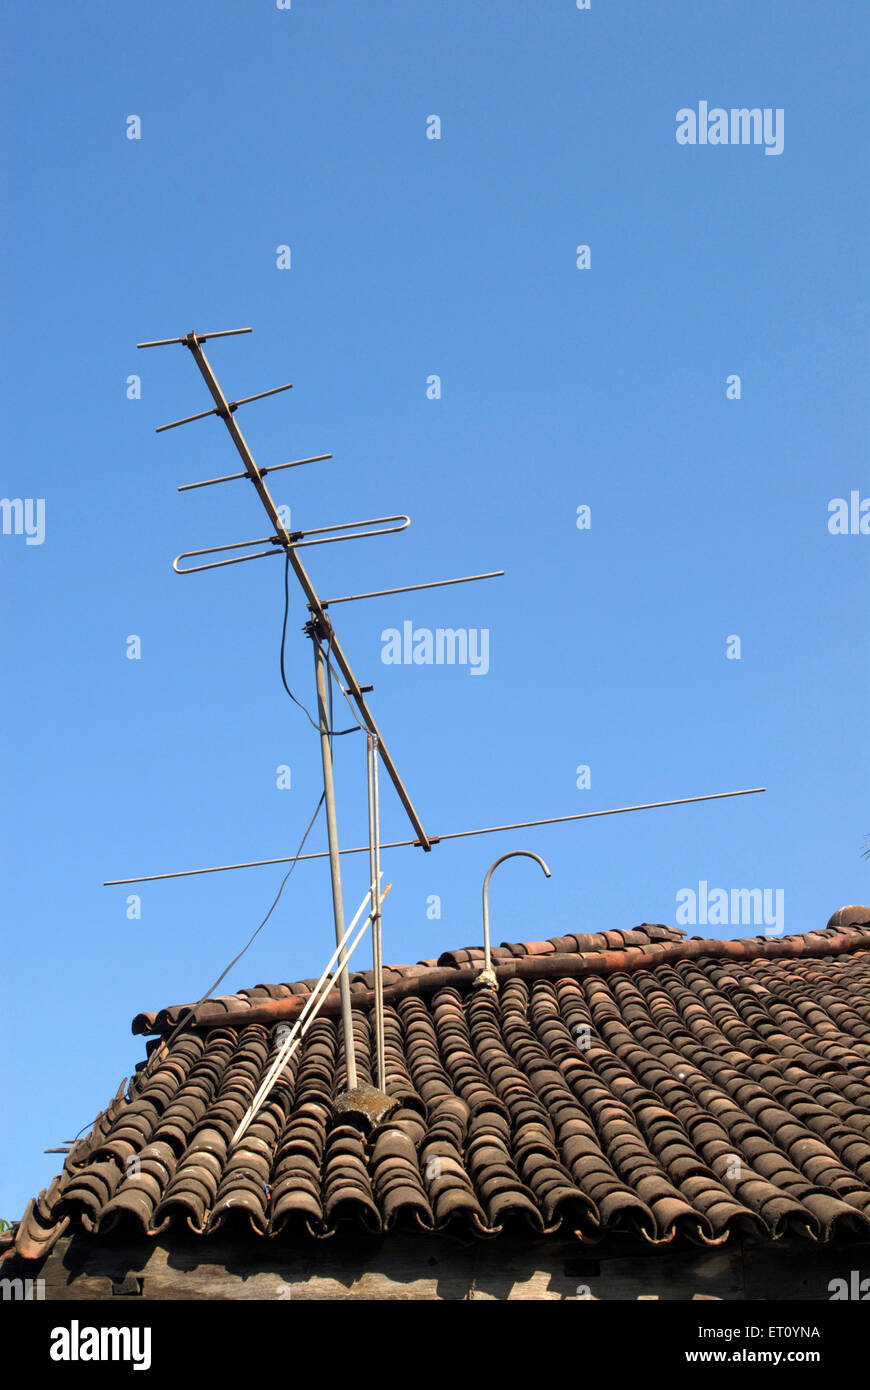 Old Tv Antenna Stock Photos Images Alamy House Wiring Diagram Roof Of Village With Television Bassein Now Vasai District Thane